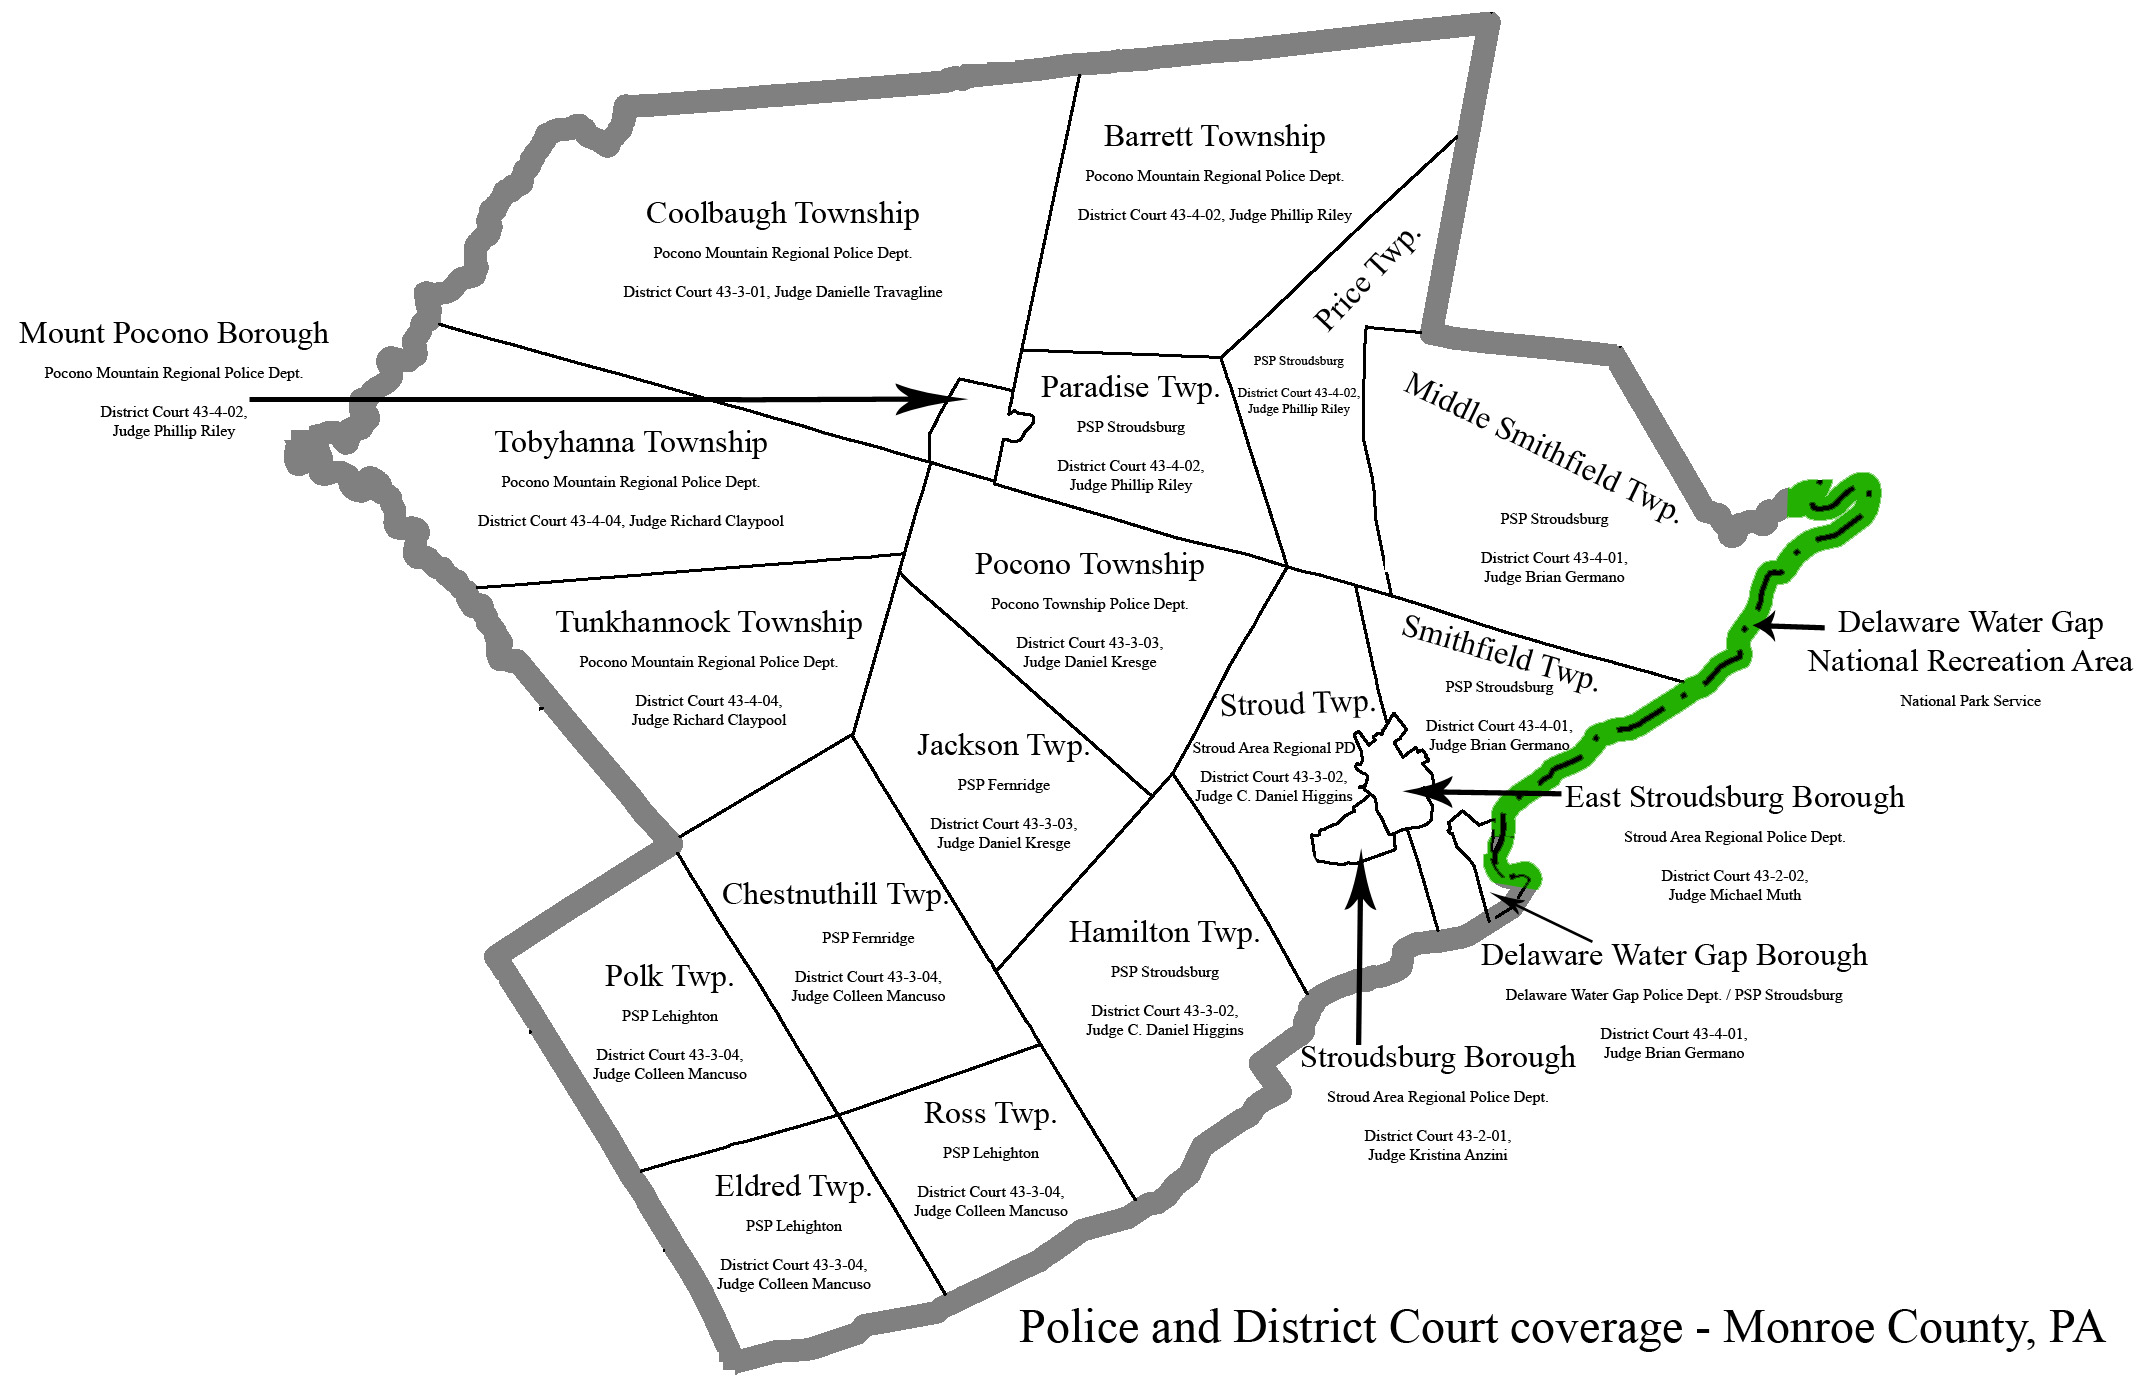 Map of Monroe County police and district court jurisdictions